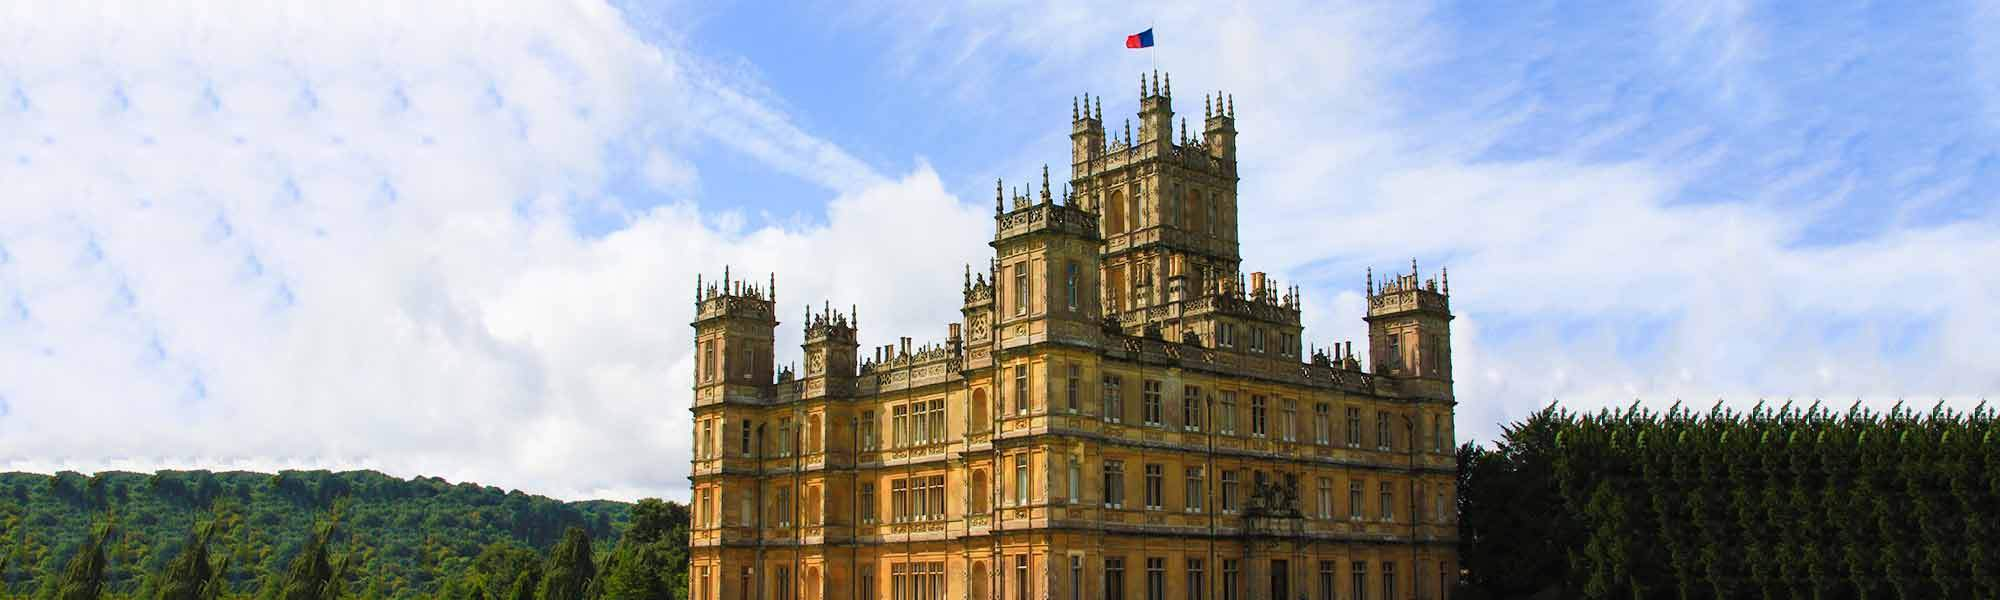 Little Bird Downton Abbey Tour & Lunch - Step behind the Scenes and Join the Aristocracy, 47% off